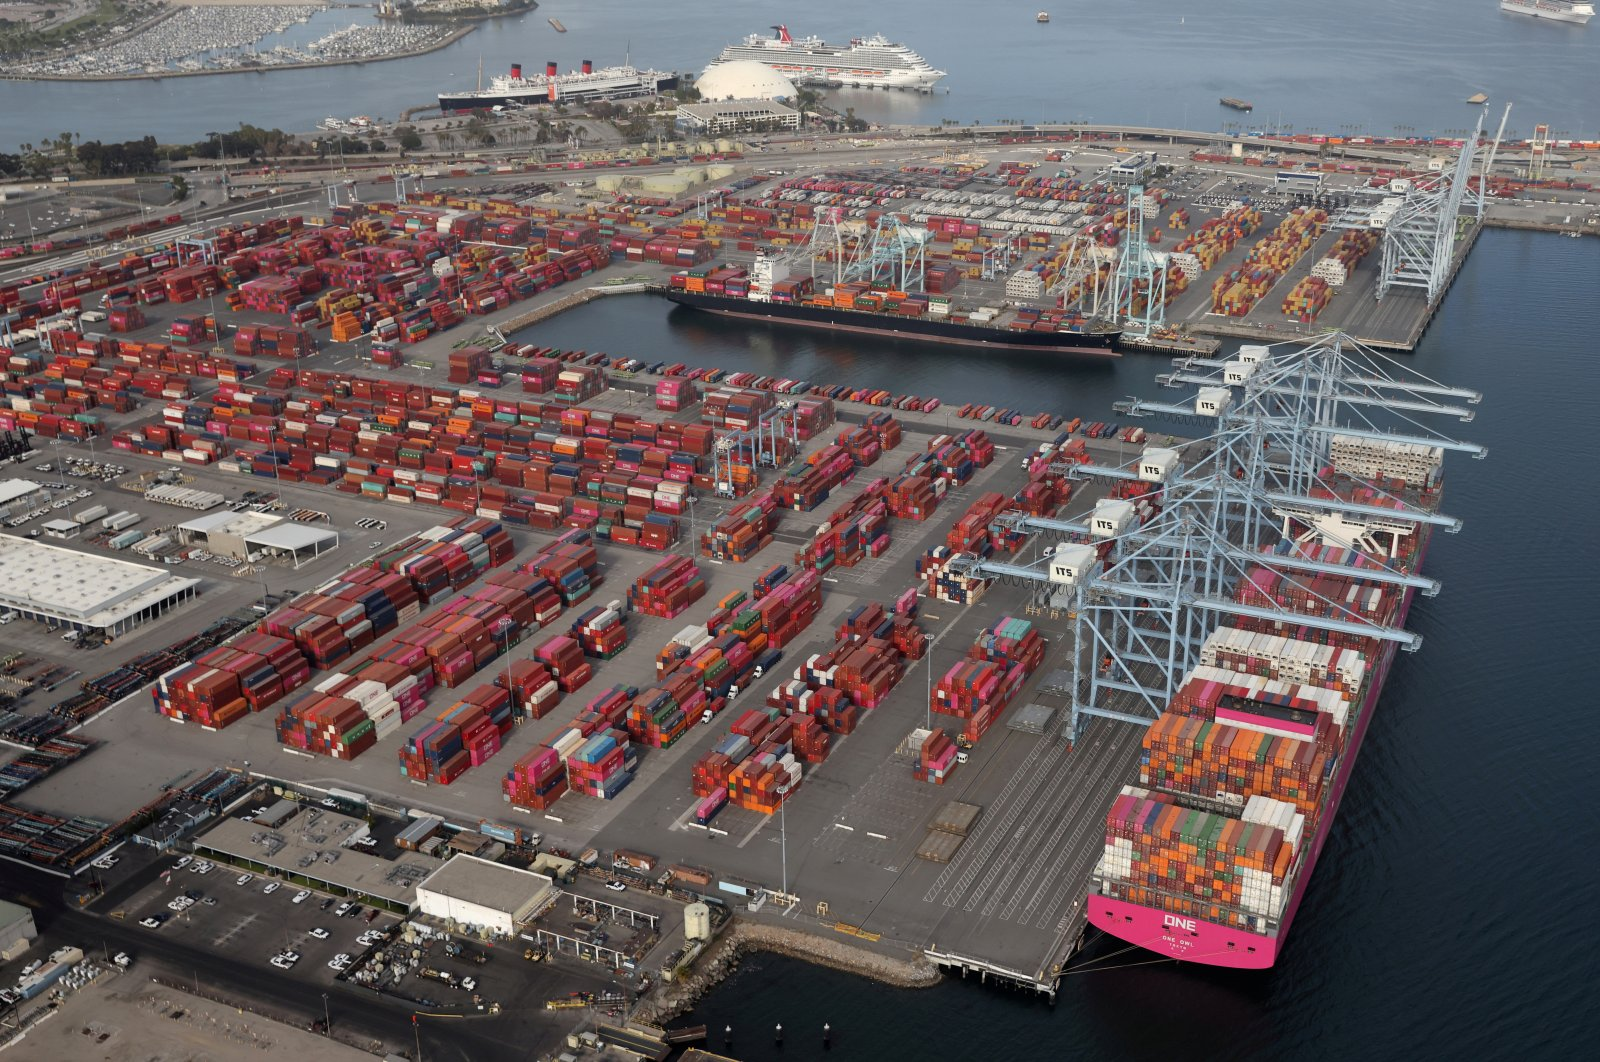 Shipping containers are unloaded from ships at a container terminal at the Port of Long Beach-Port of Los Angeles complex, Los Angeles, California, U.S., April 7, 2021. (Reuters Photo)